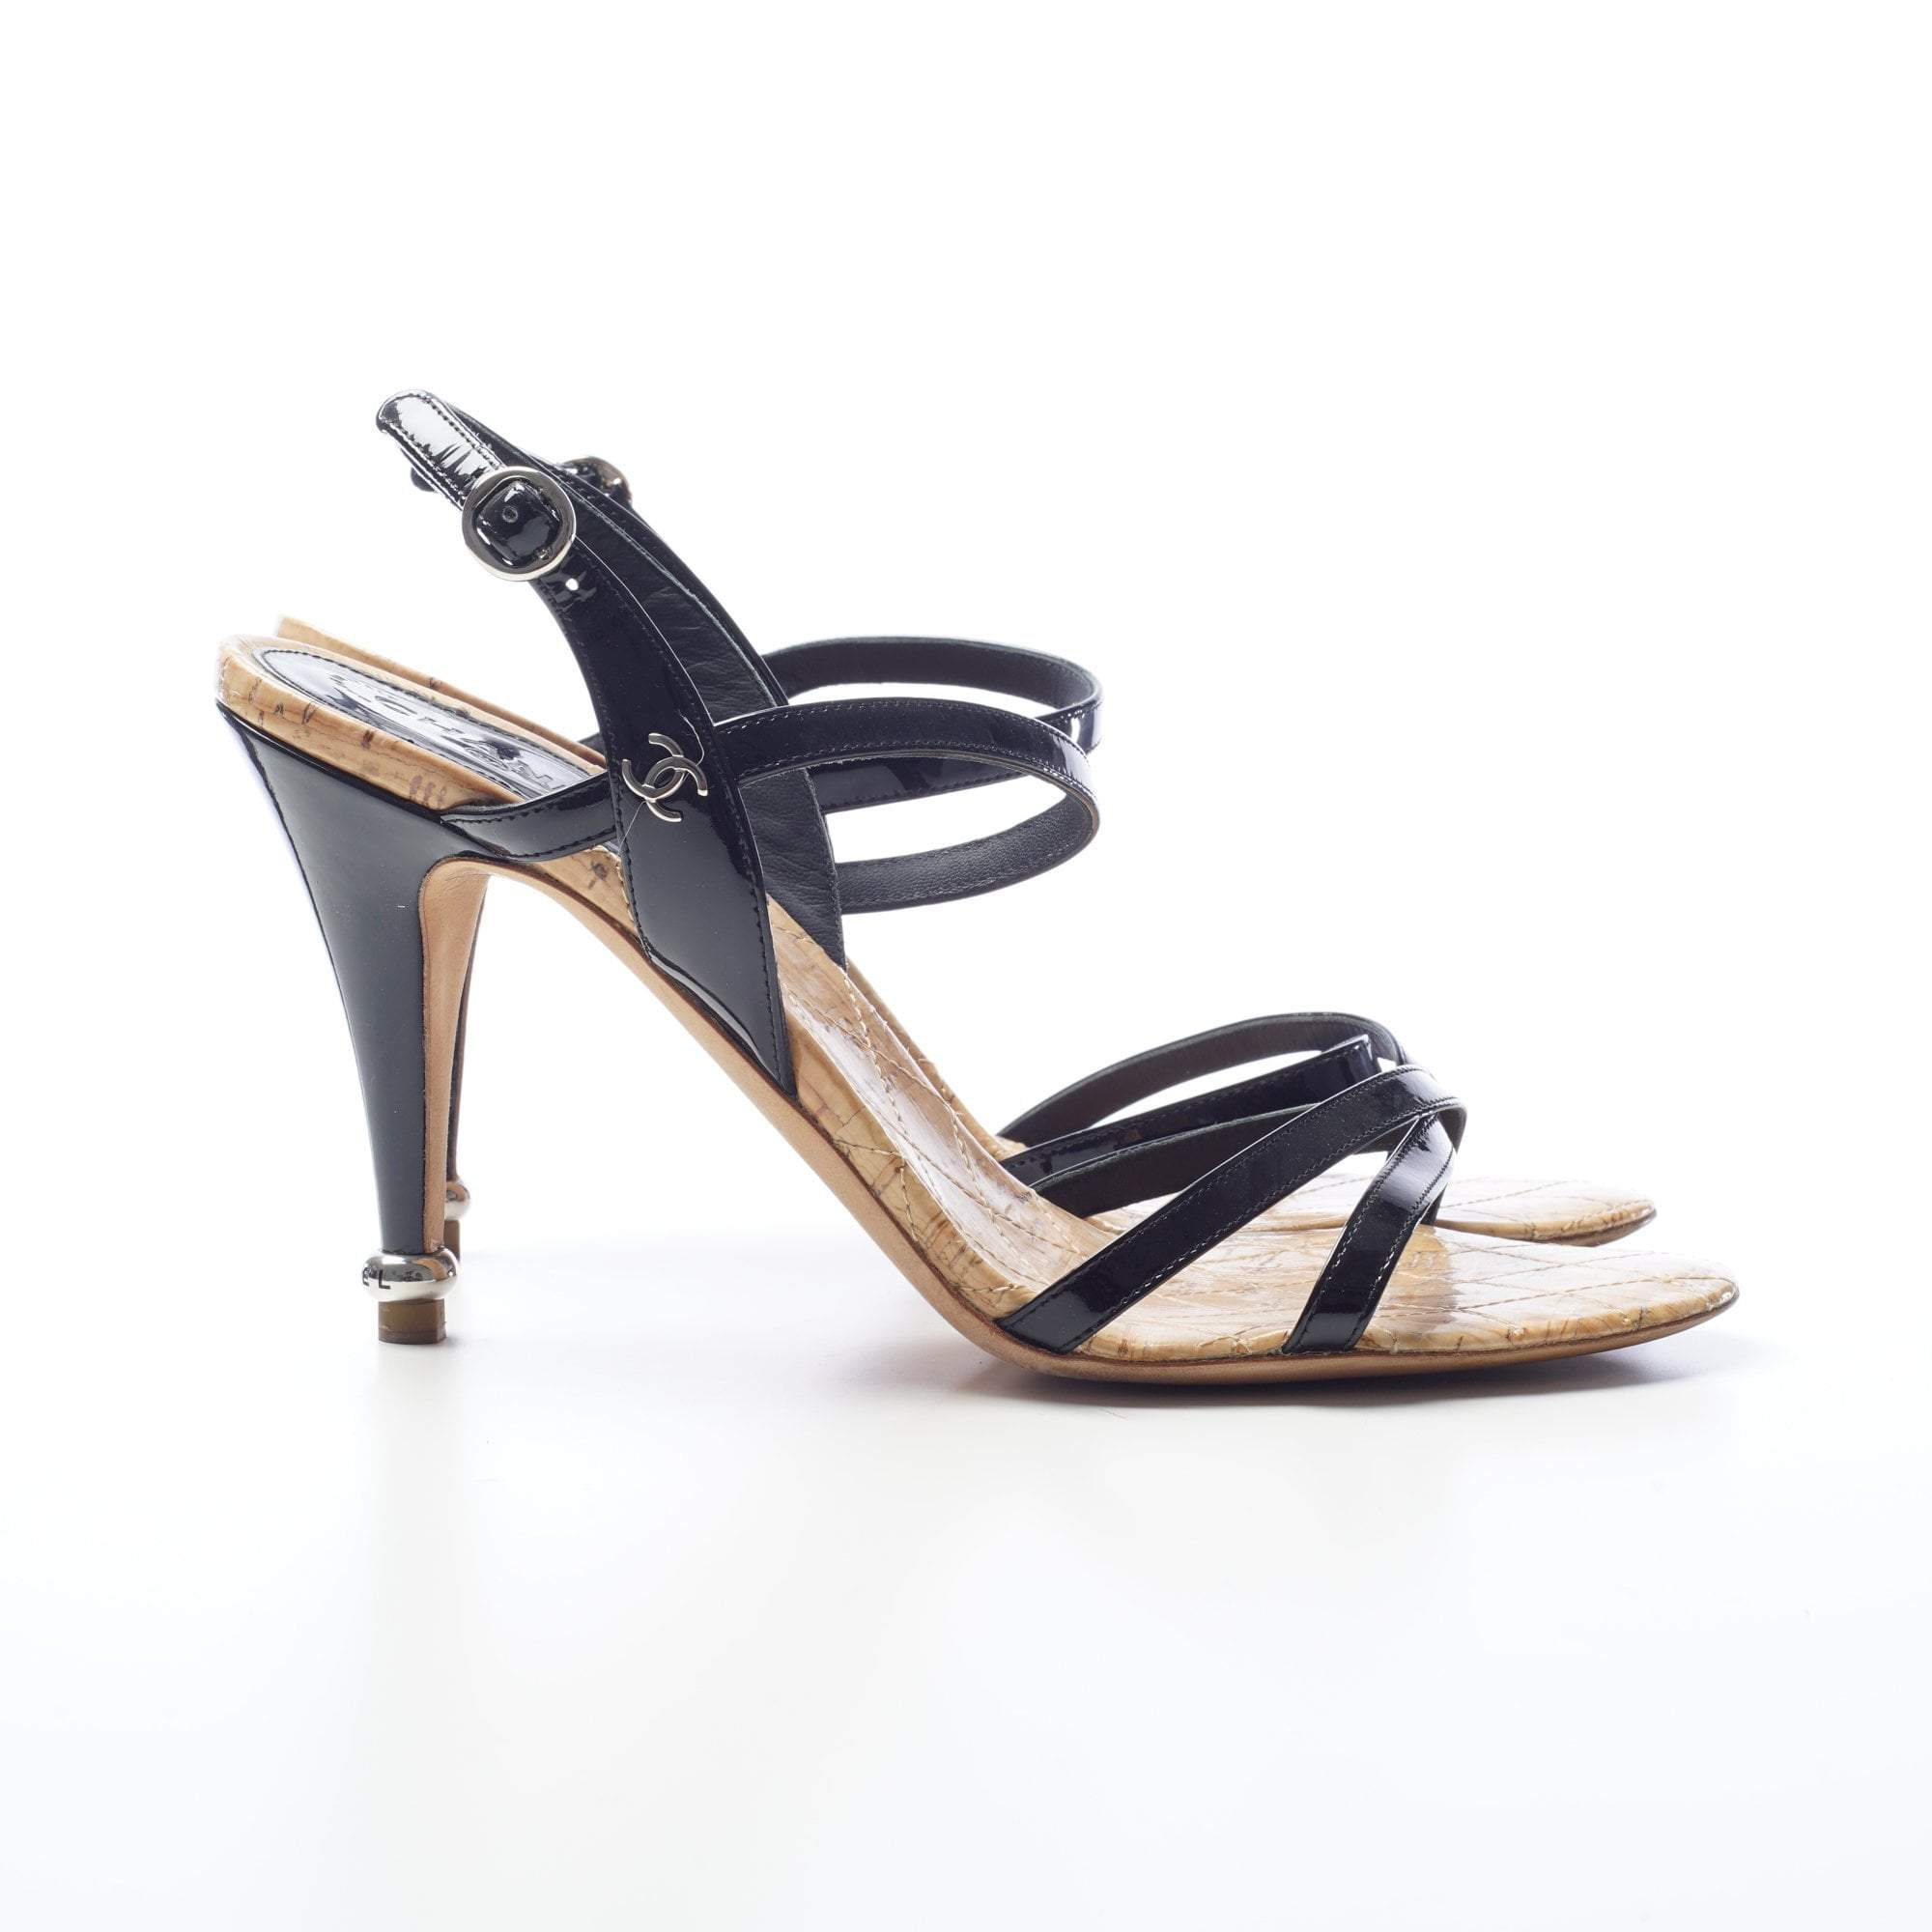 Chanel Black Patent Leather Strappy Heels